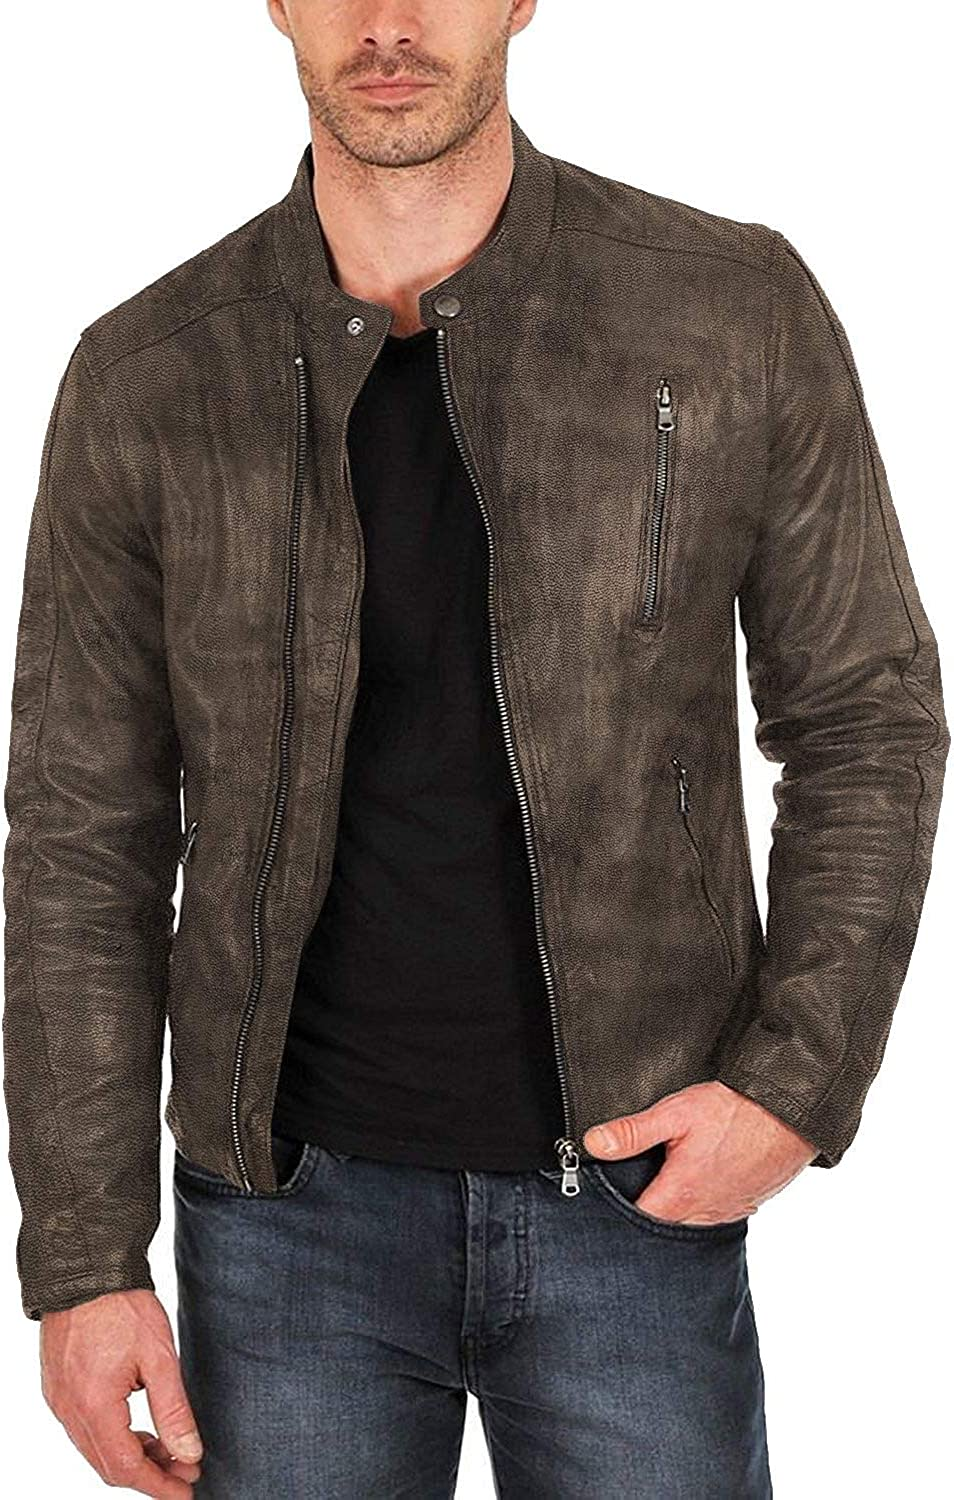 Laverapelle Mens Genuine Lambskin Leather Jacket Black, Classic Jacket 1501159